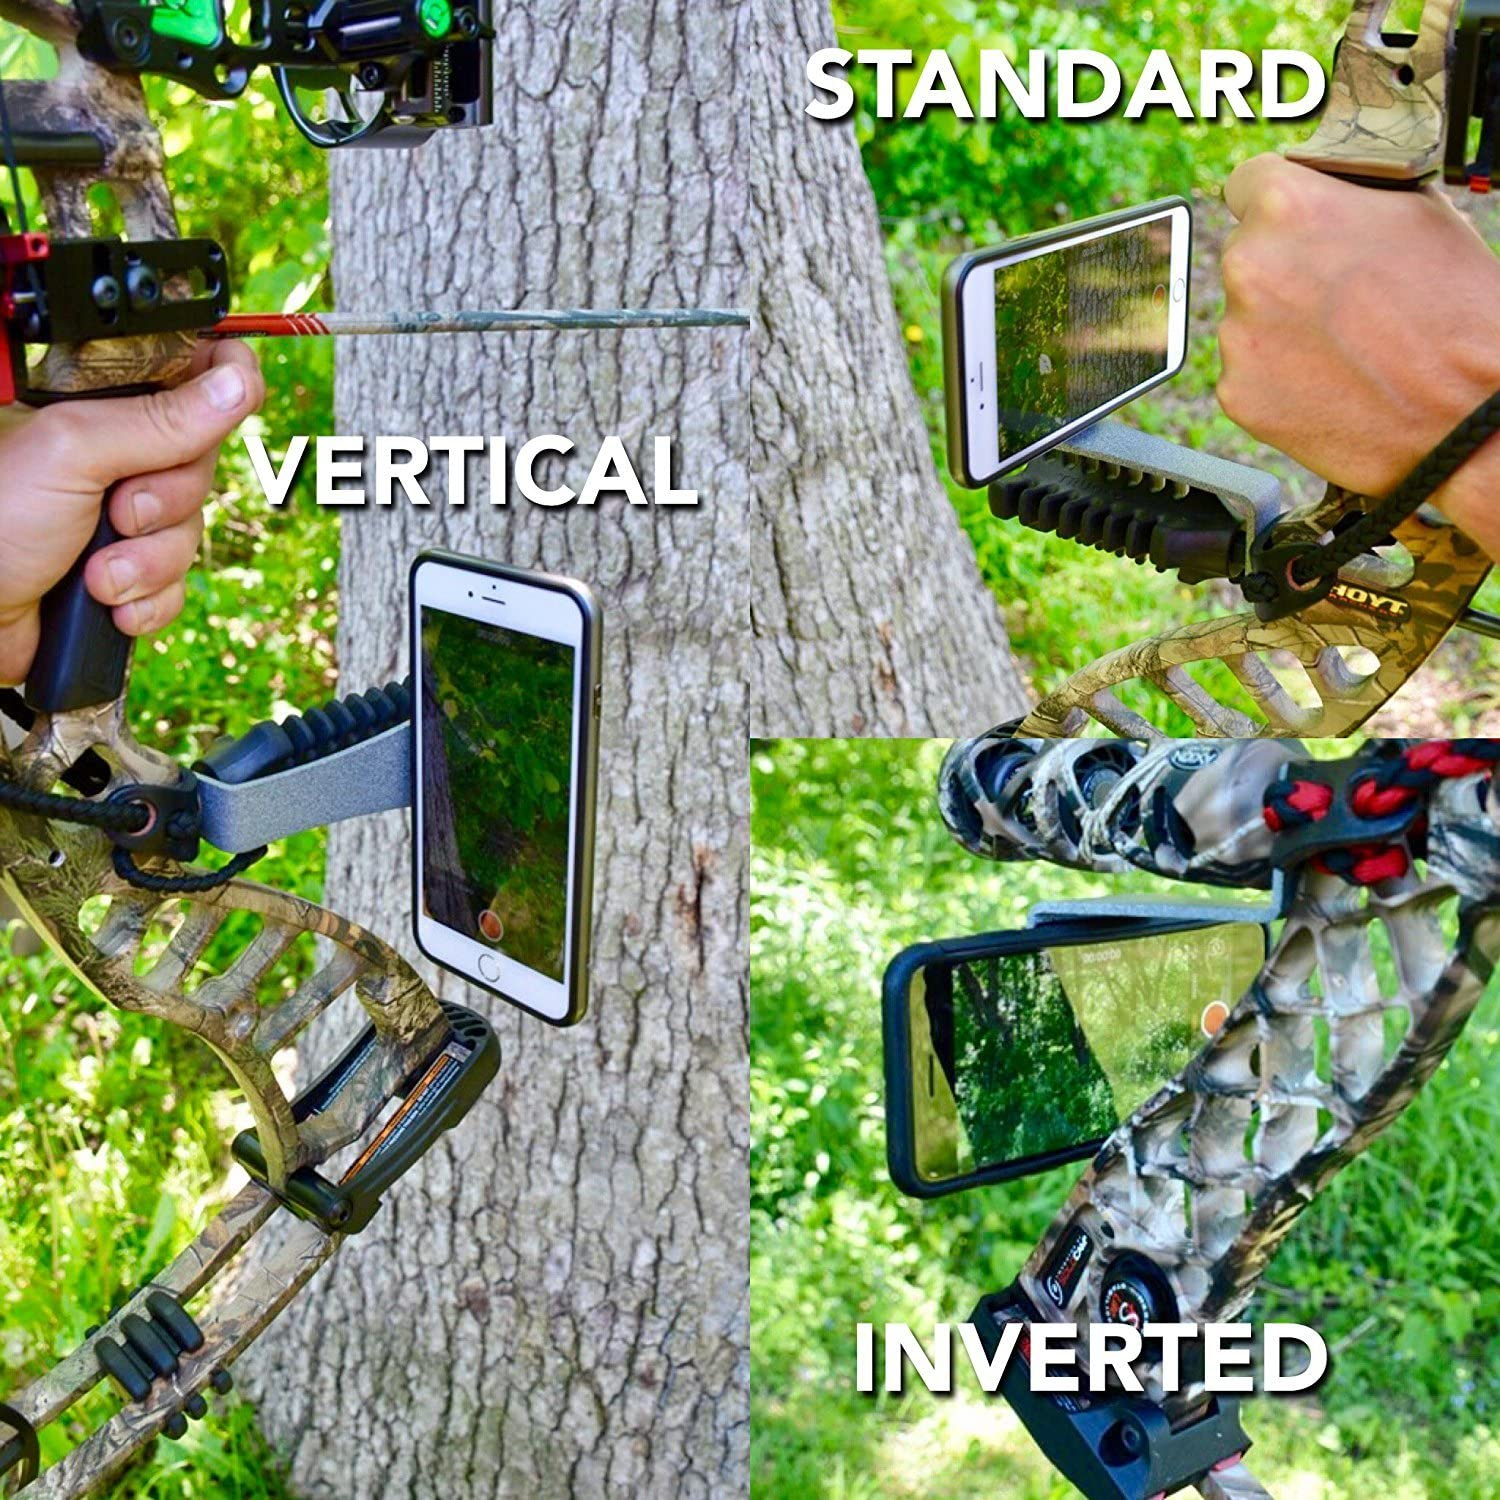 Midwest Orion Smartphone Camera Bow Phone Mount for Use with iPhone,Samsung,gopro and More